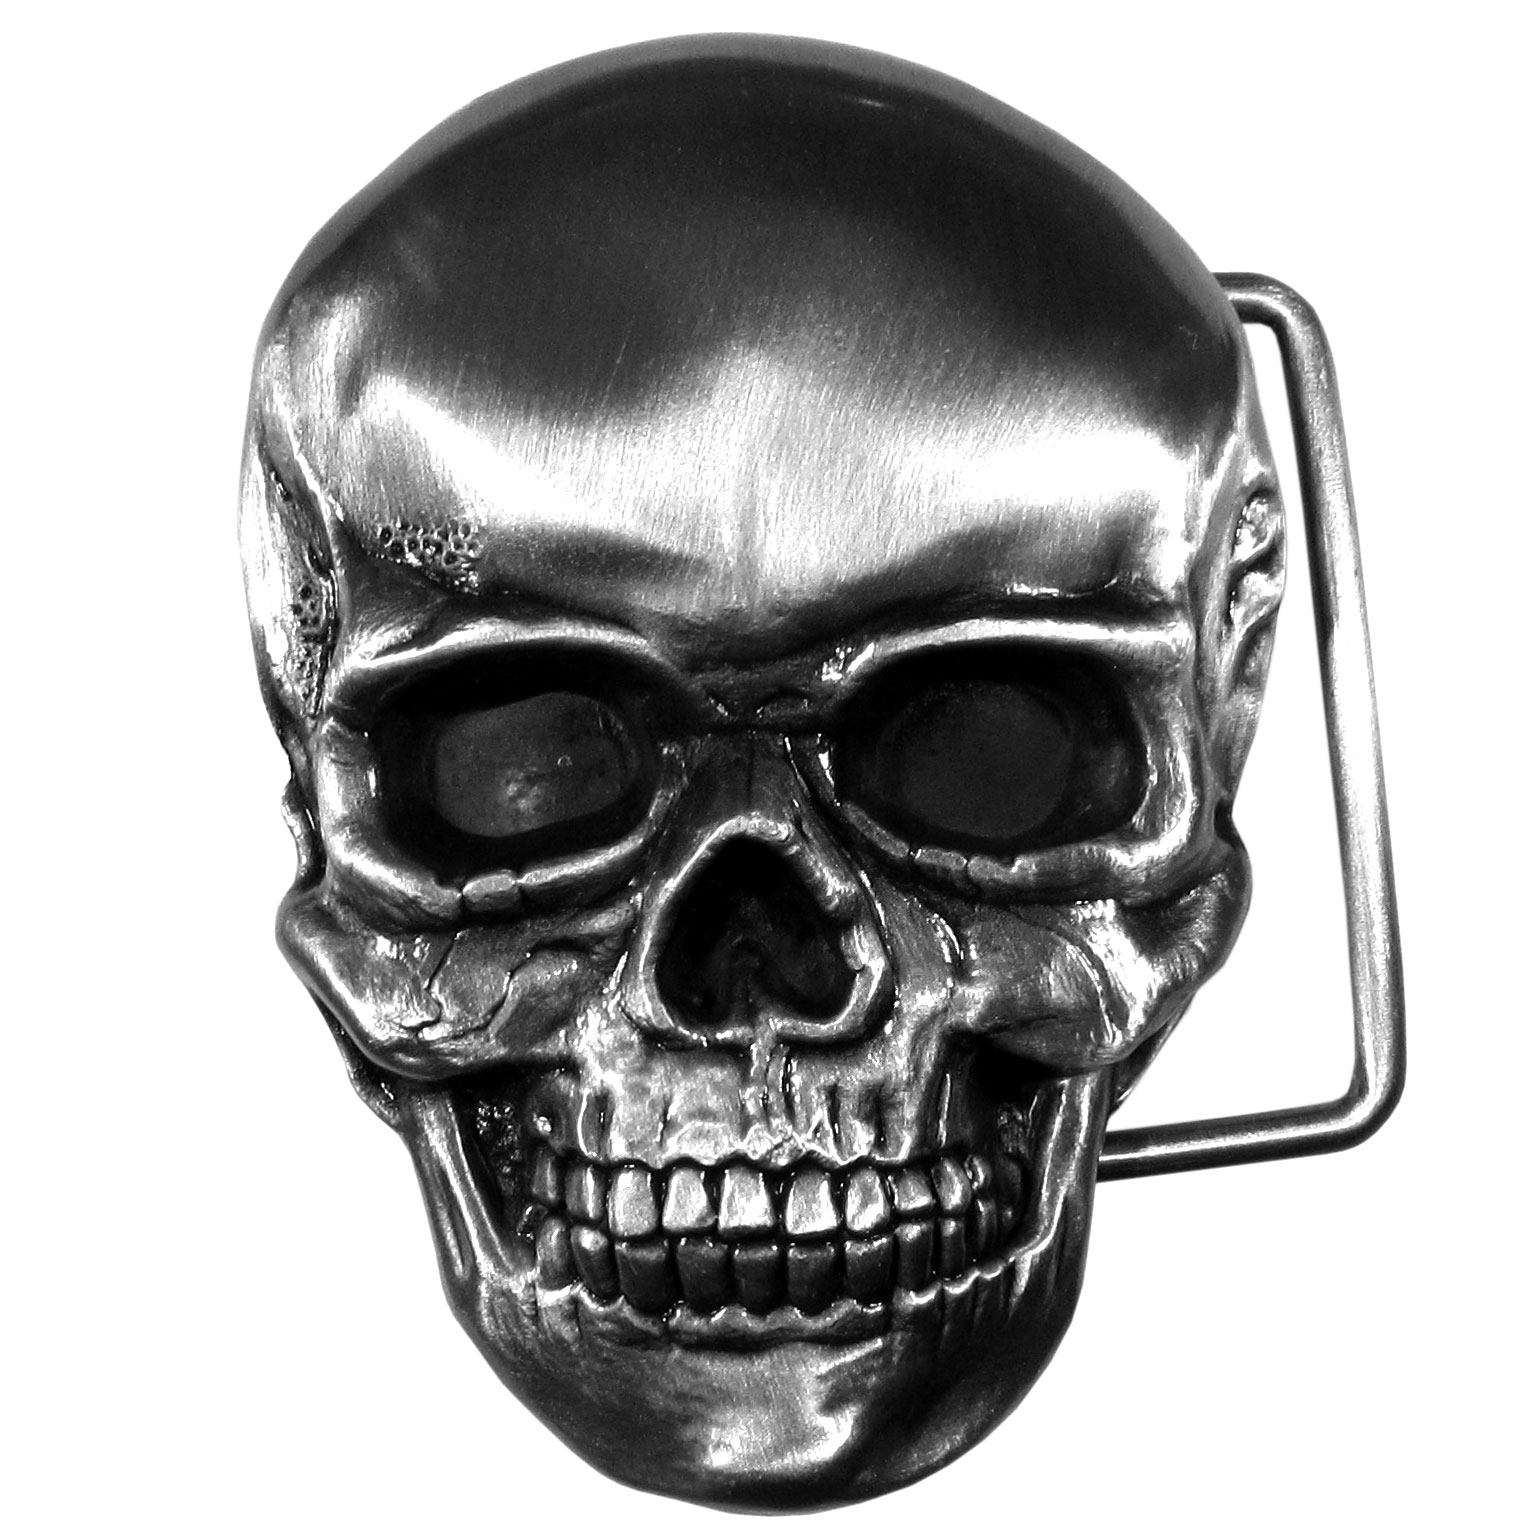 Skull Antiqued Belt Buckle - Finely sculpted and intricately designed belt buckle. Our unique designs often become collector's items.